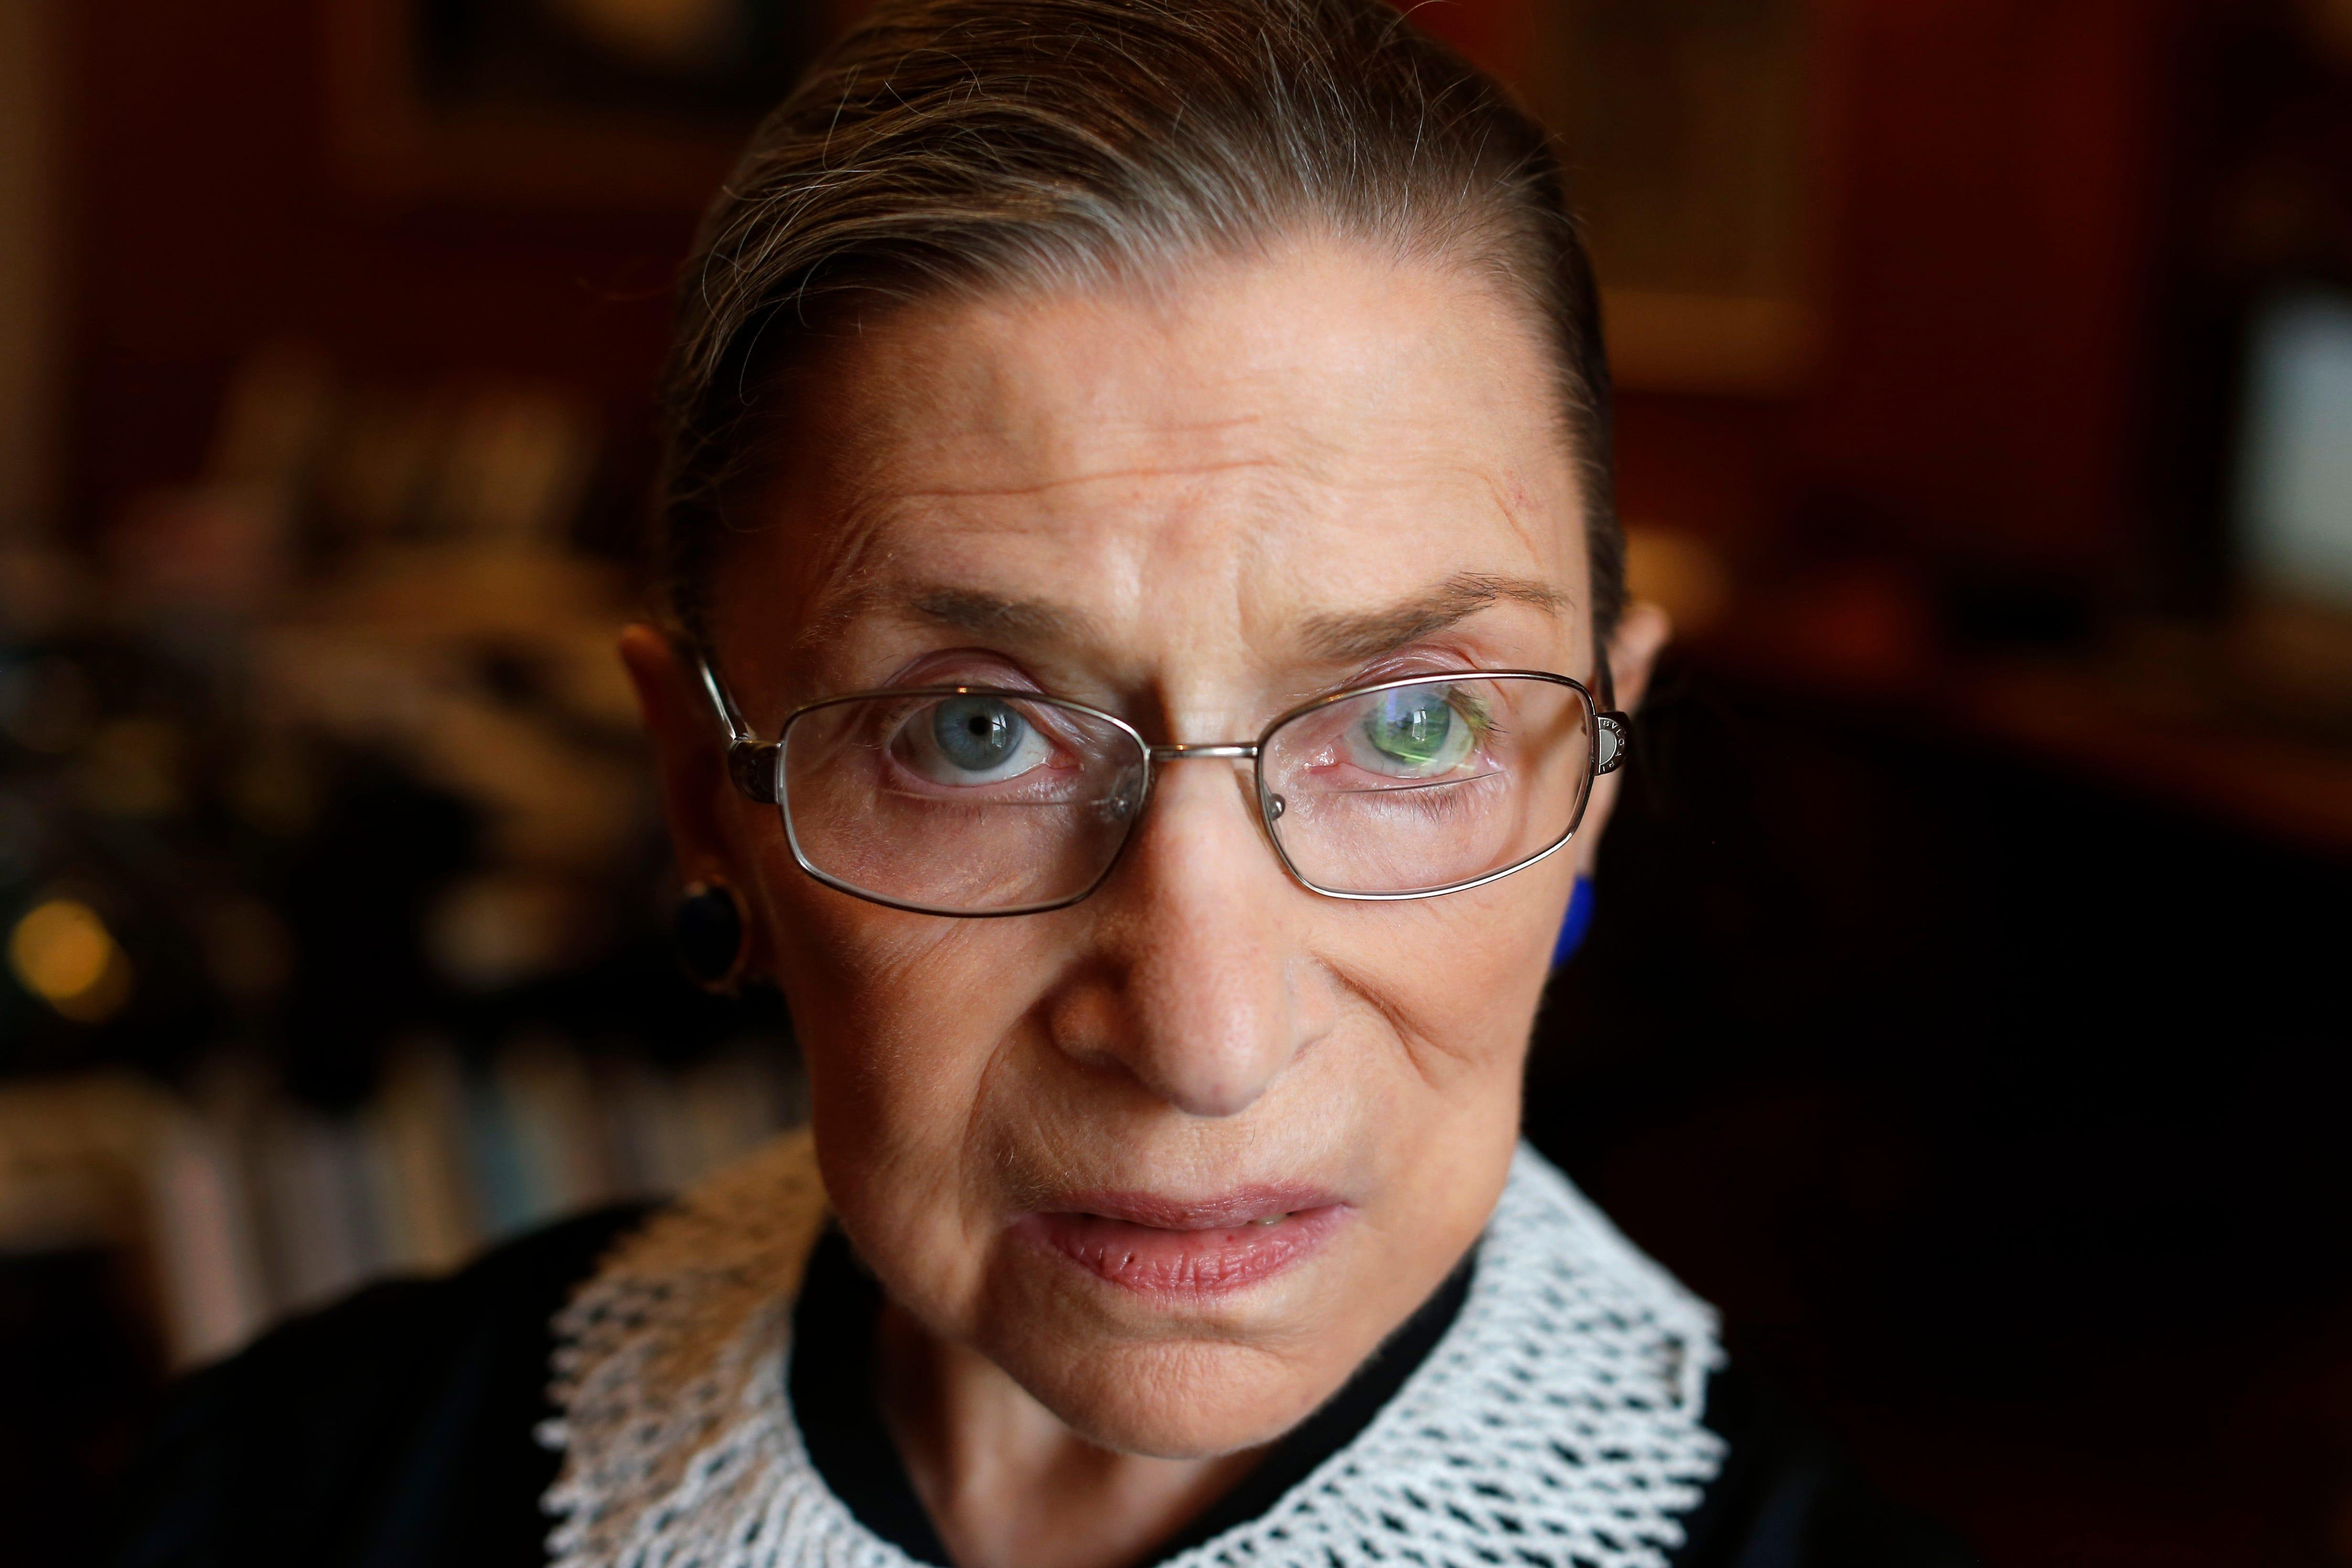 Ruth Bader Ginsburg's life and work propelled women's equality front and center